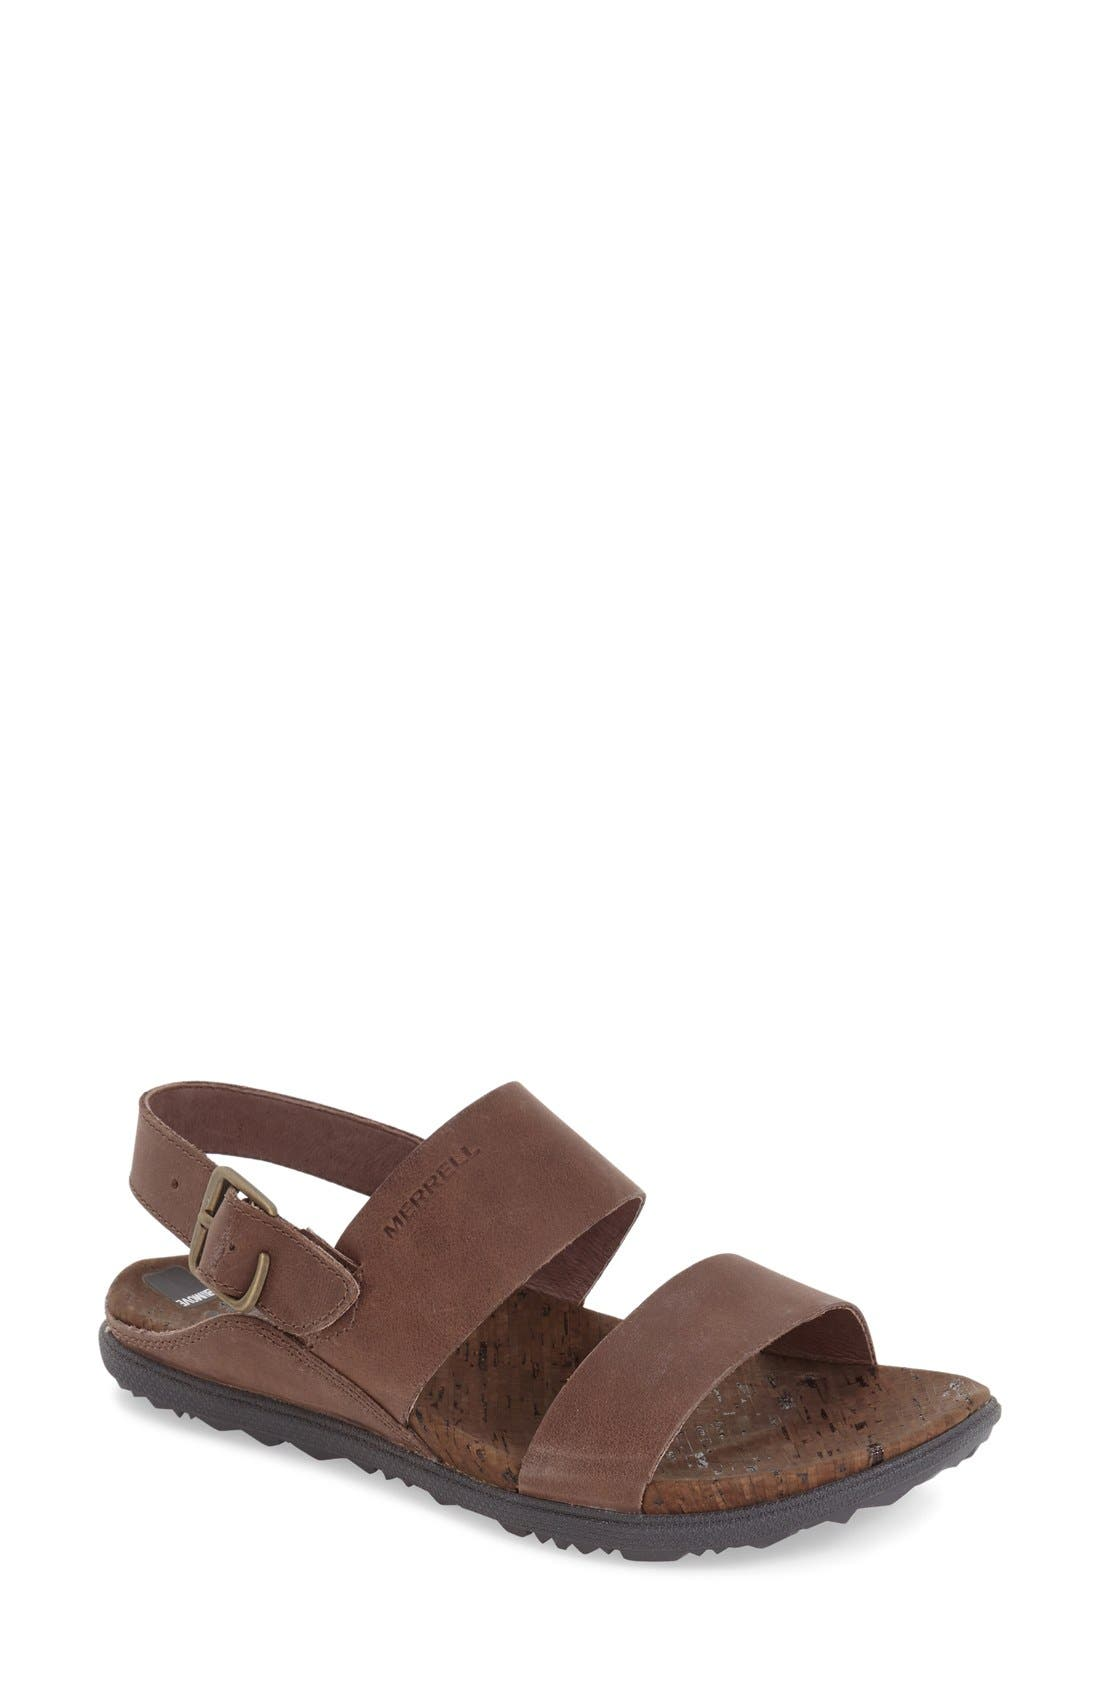 'Around Town' Slingback Sandal,                             Main thumbnail 1, color,                             Brown Leather